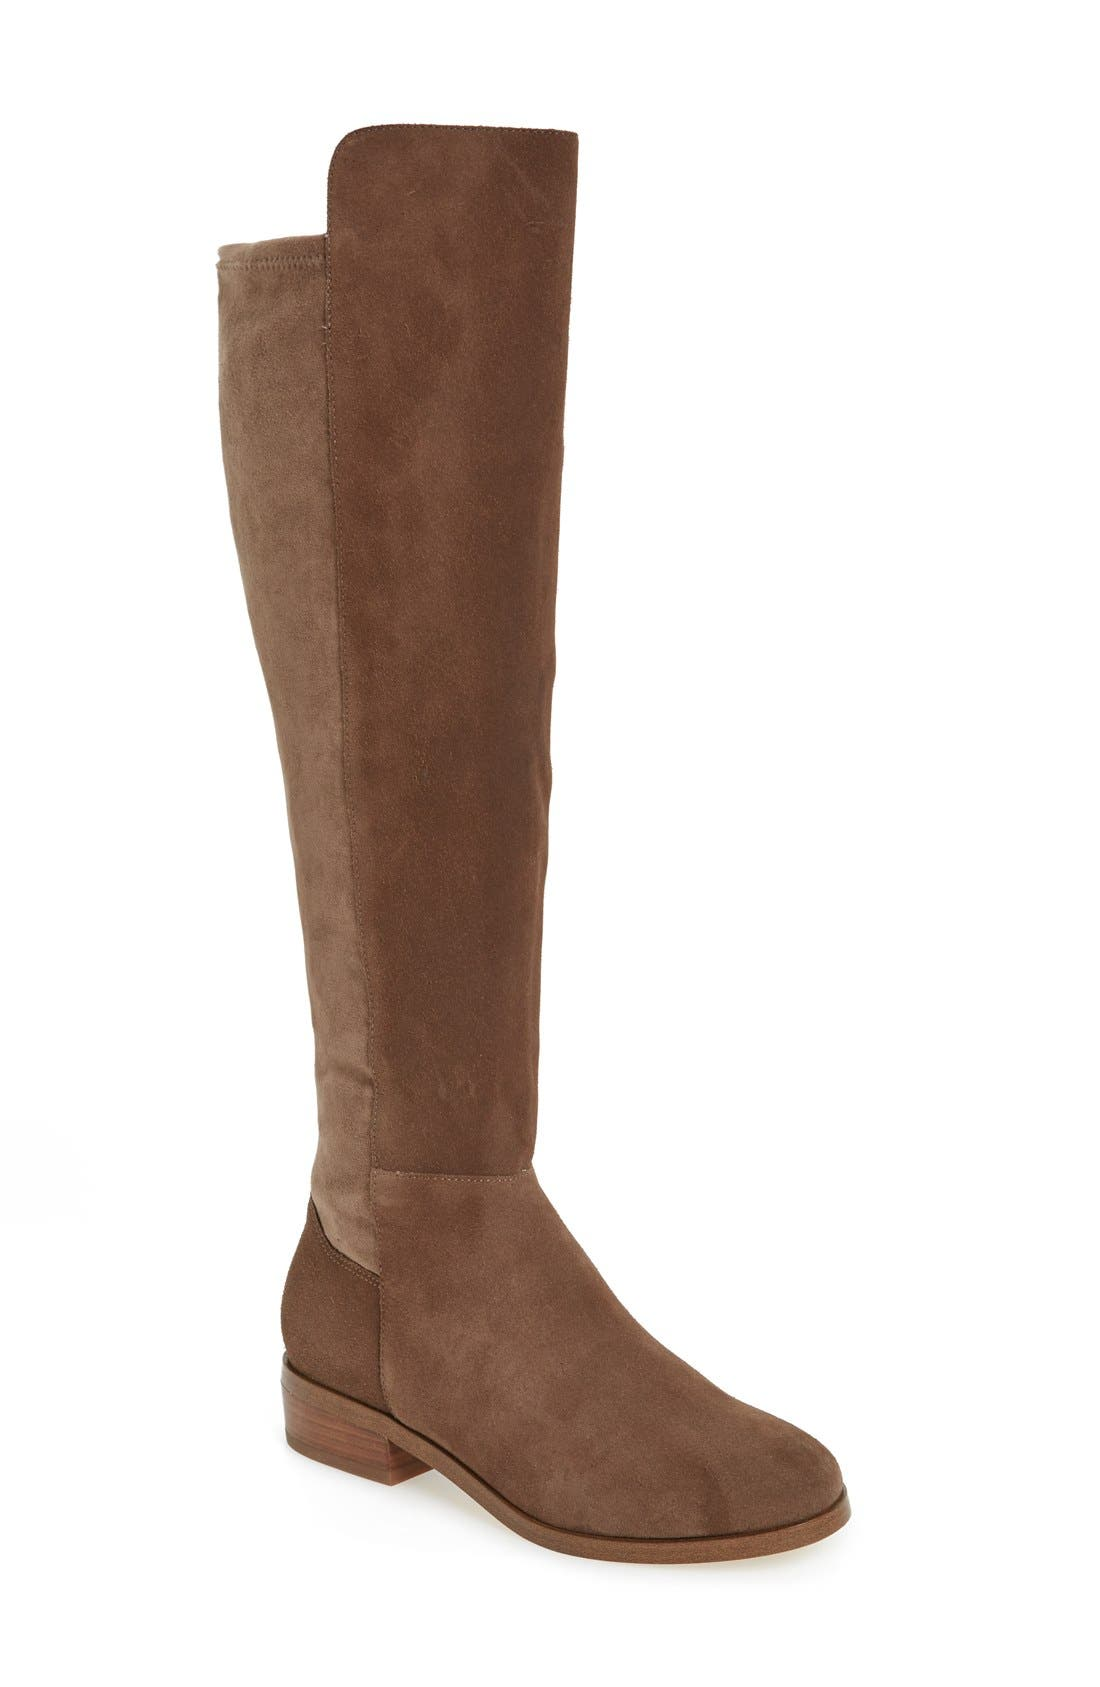 Main Image - Sole Society Calypso Over the Knee Boot (Women)